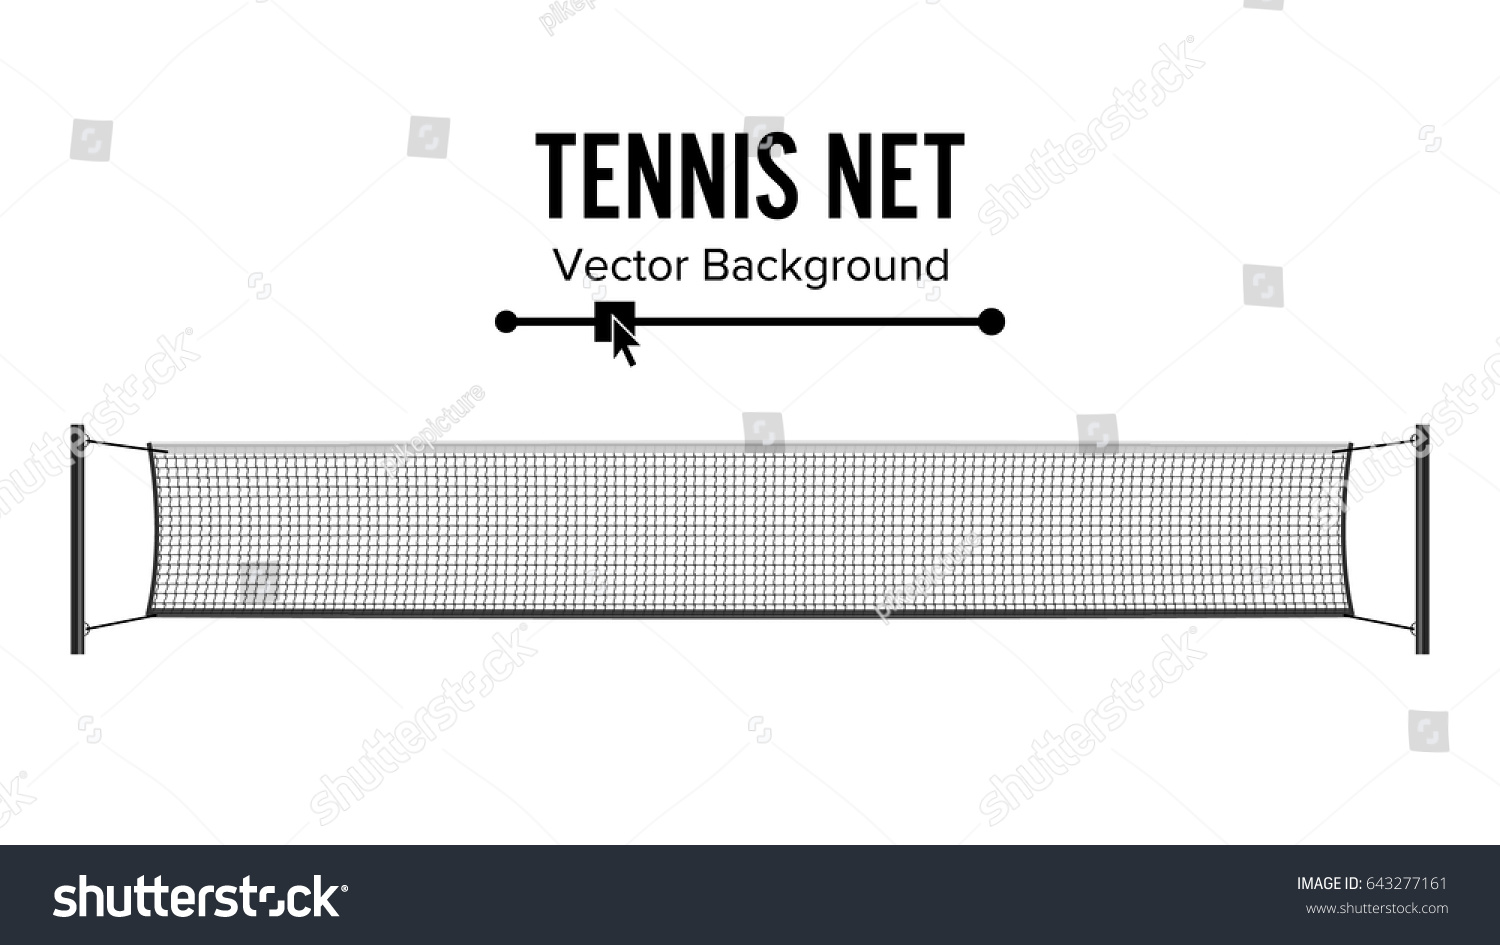 Tennis Net Vector Realistic Net Used Stock Vector (Royalty Free ...